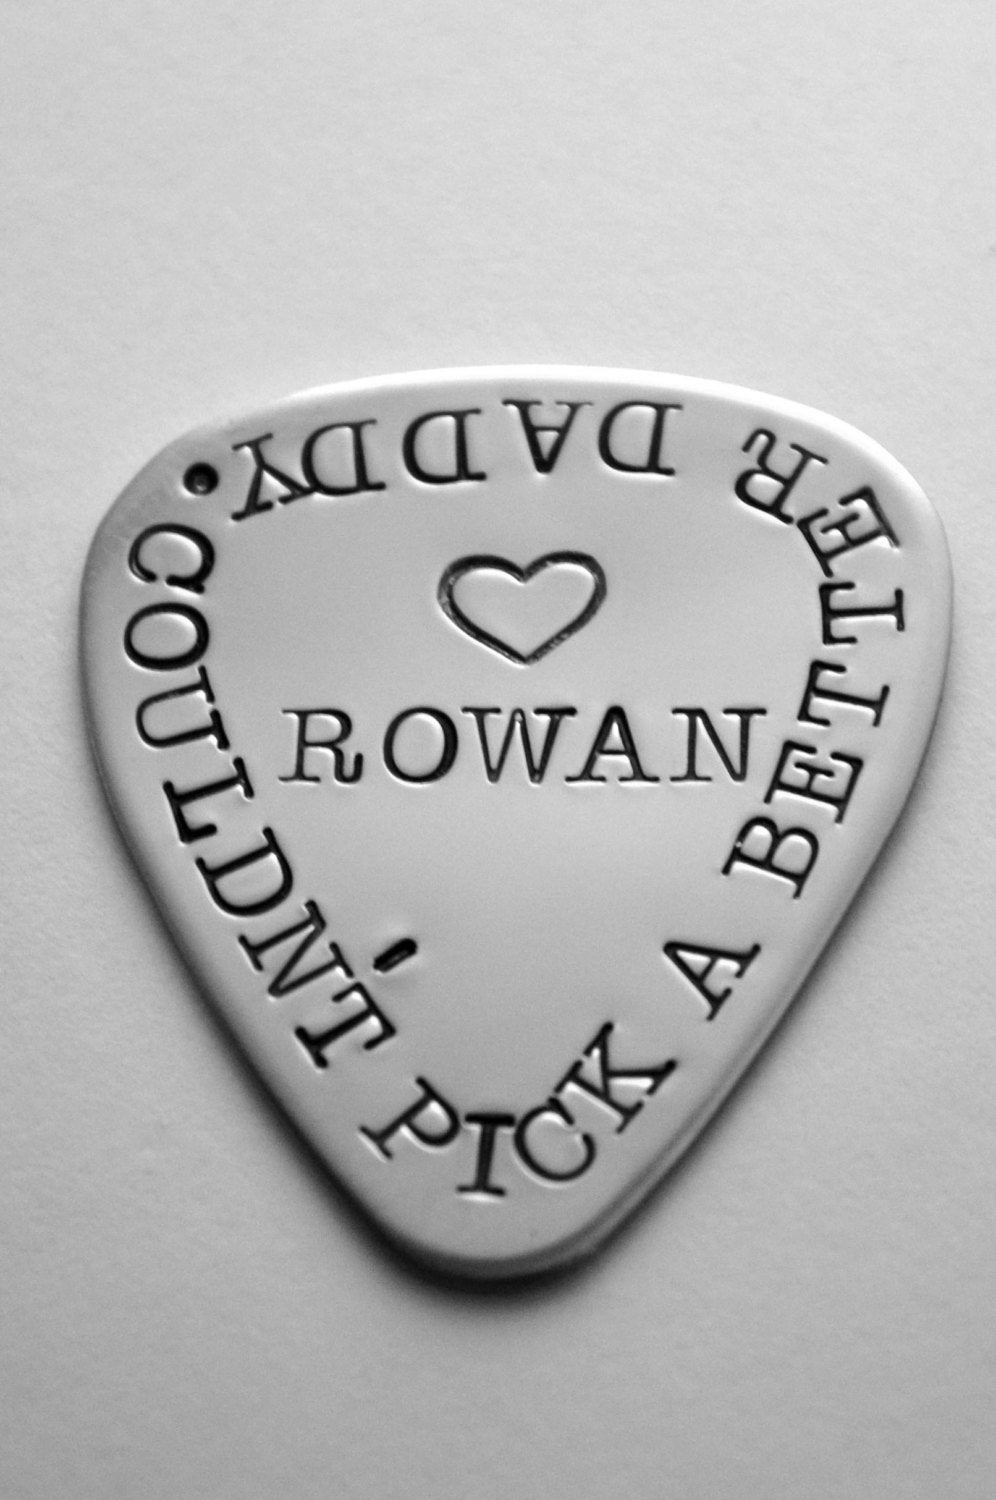 Personalized guitar pick - Father's Day - Groomsmen Gift - hand stamped s. steel - Choice of font - ANY WORDING - See ALL photos!